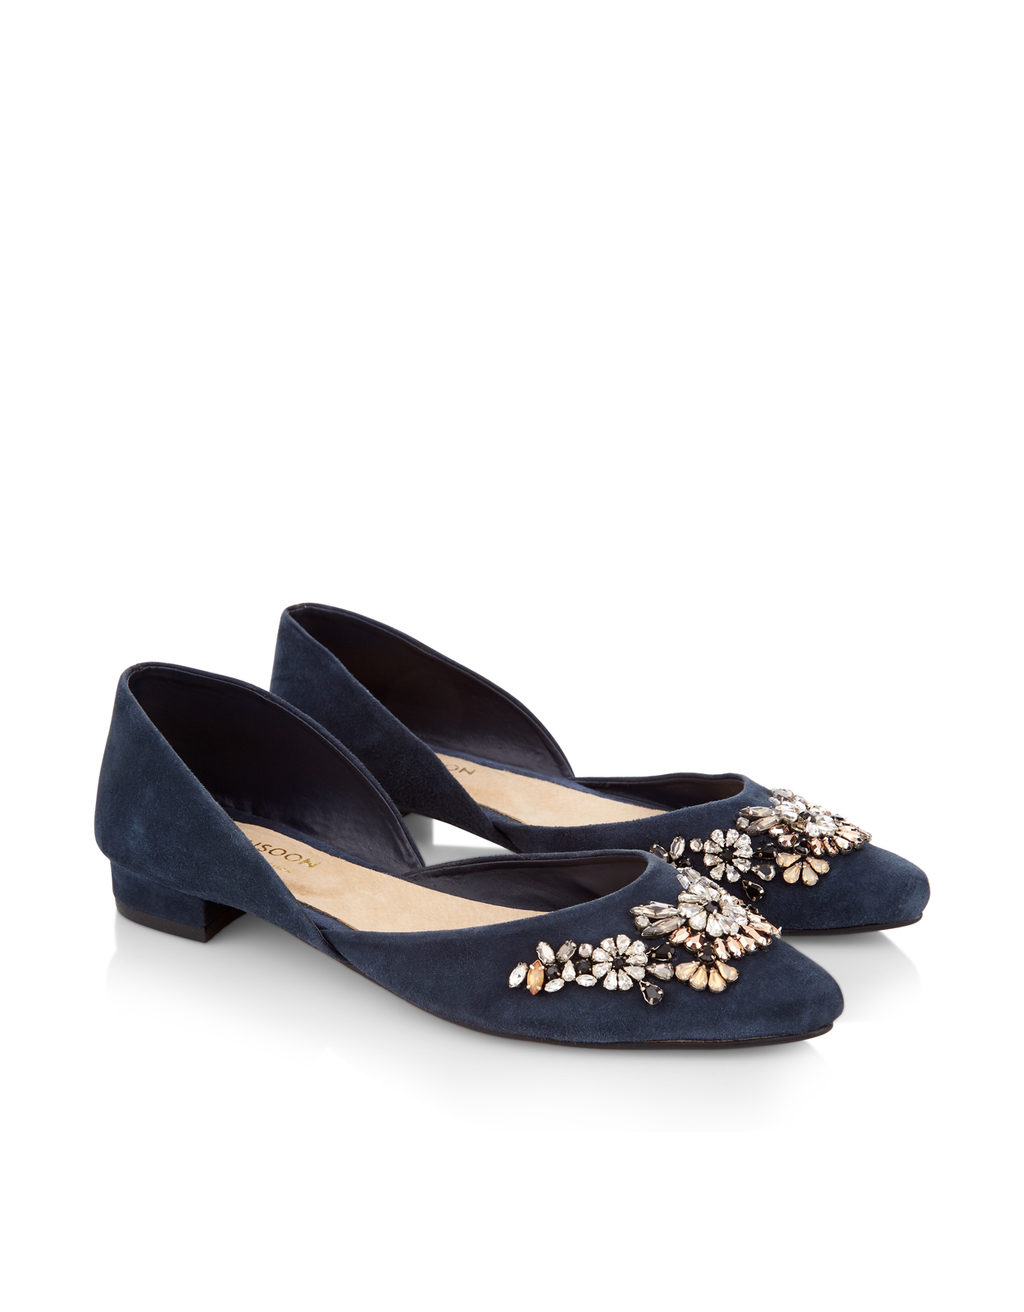 Erela Embellished Ballerina - predominant colour: navy; secondary colour: silver; occasions: casual, creative work; material: suede; heel height: flat; toe: round toe; style: ballerinas / pumps; finish: plain; pattern: plain; season: s/s 2016; wardrobe: basic